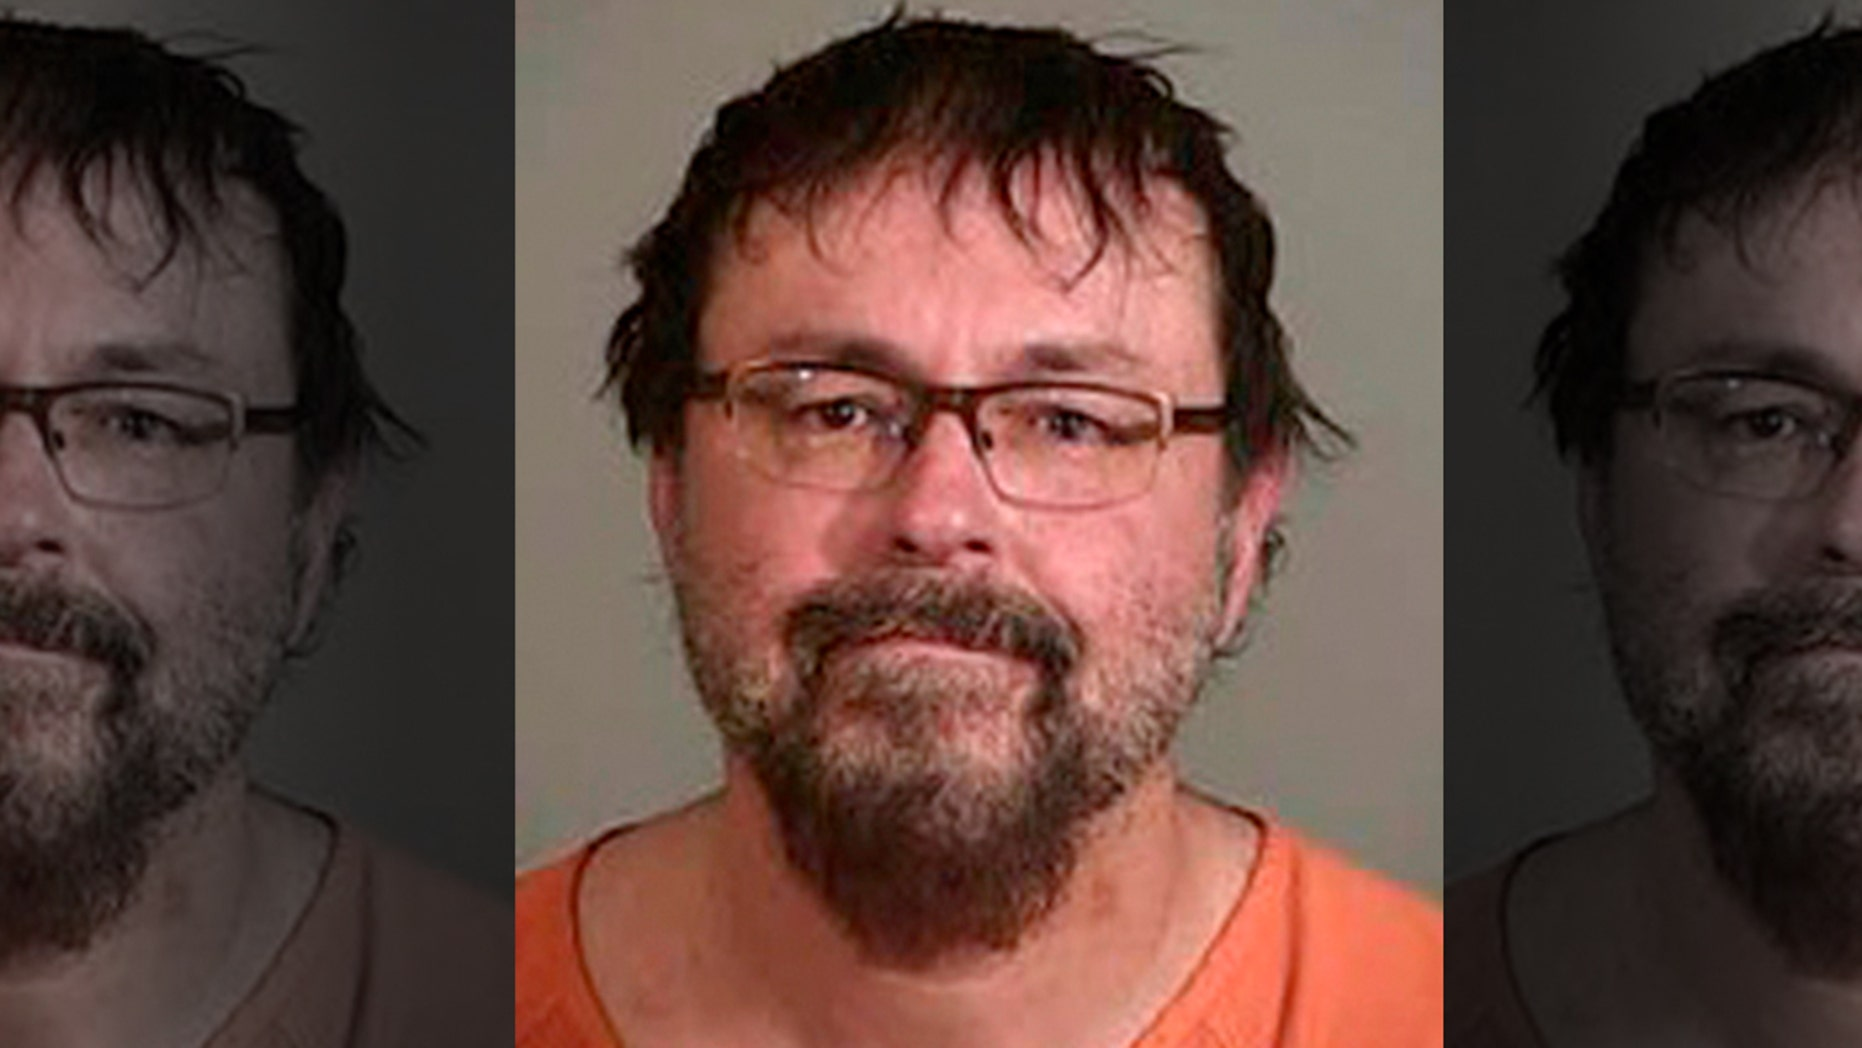 Tad Cummins, 52, was sentenced to 20 years in prison on Wednesday after he spent five weeks on the run with a 15-year-old student in the spring of 2017.